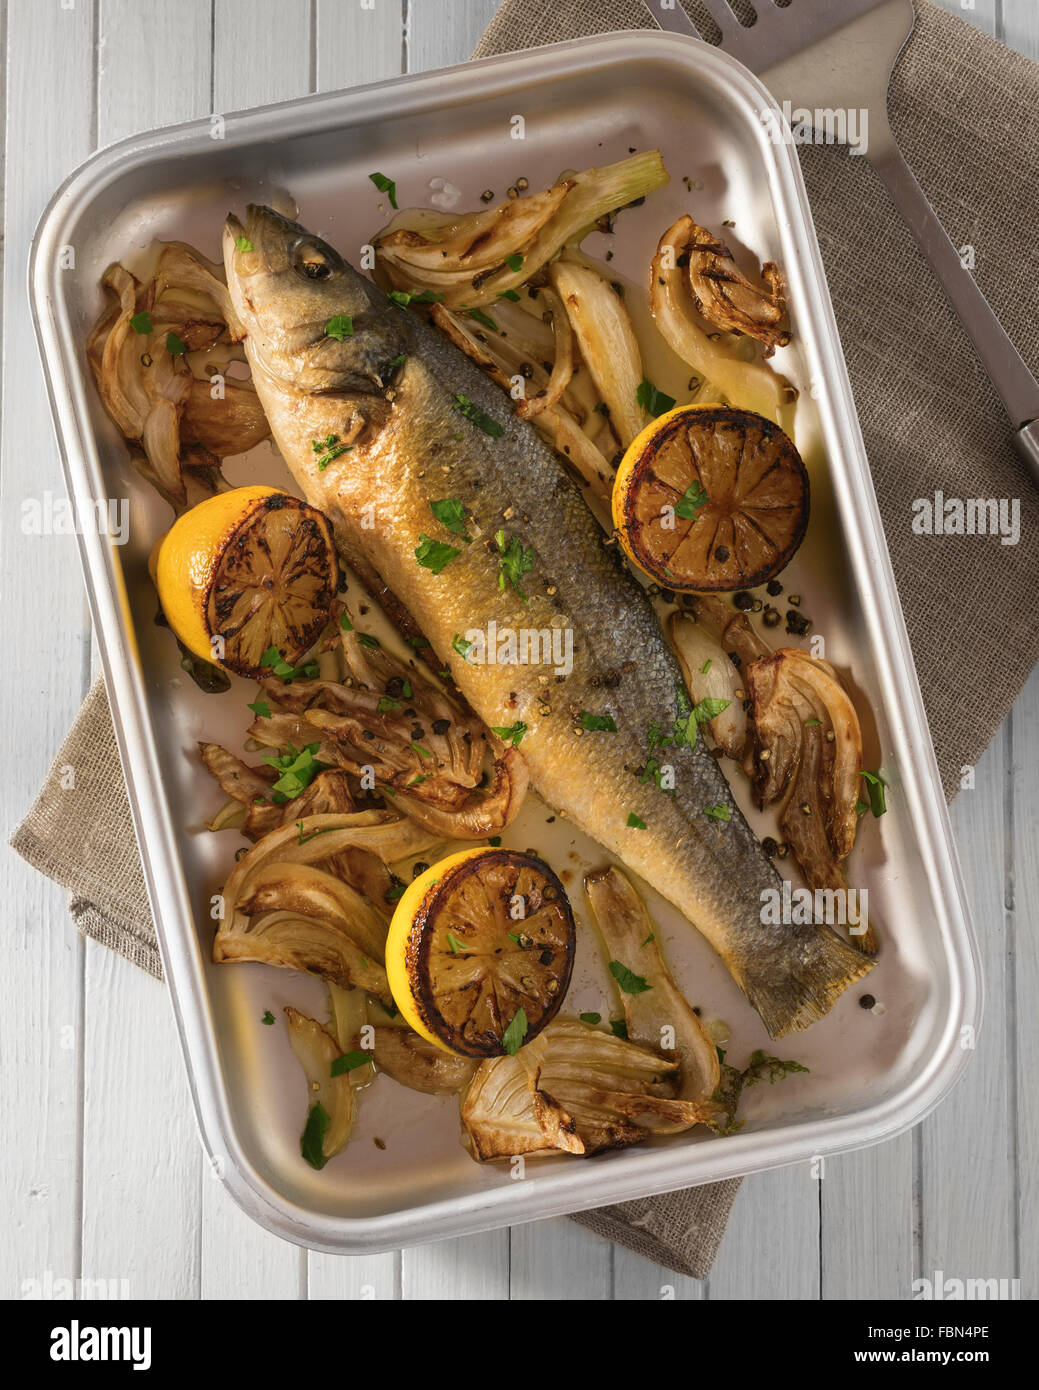 Baked sea bass with fennel and lemon - Stock Image